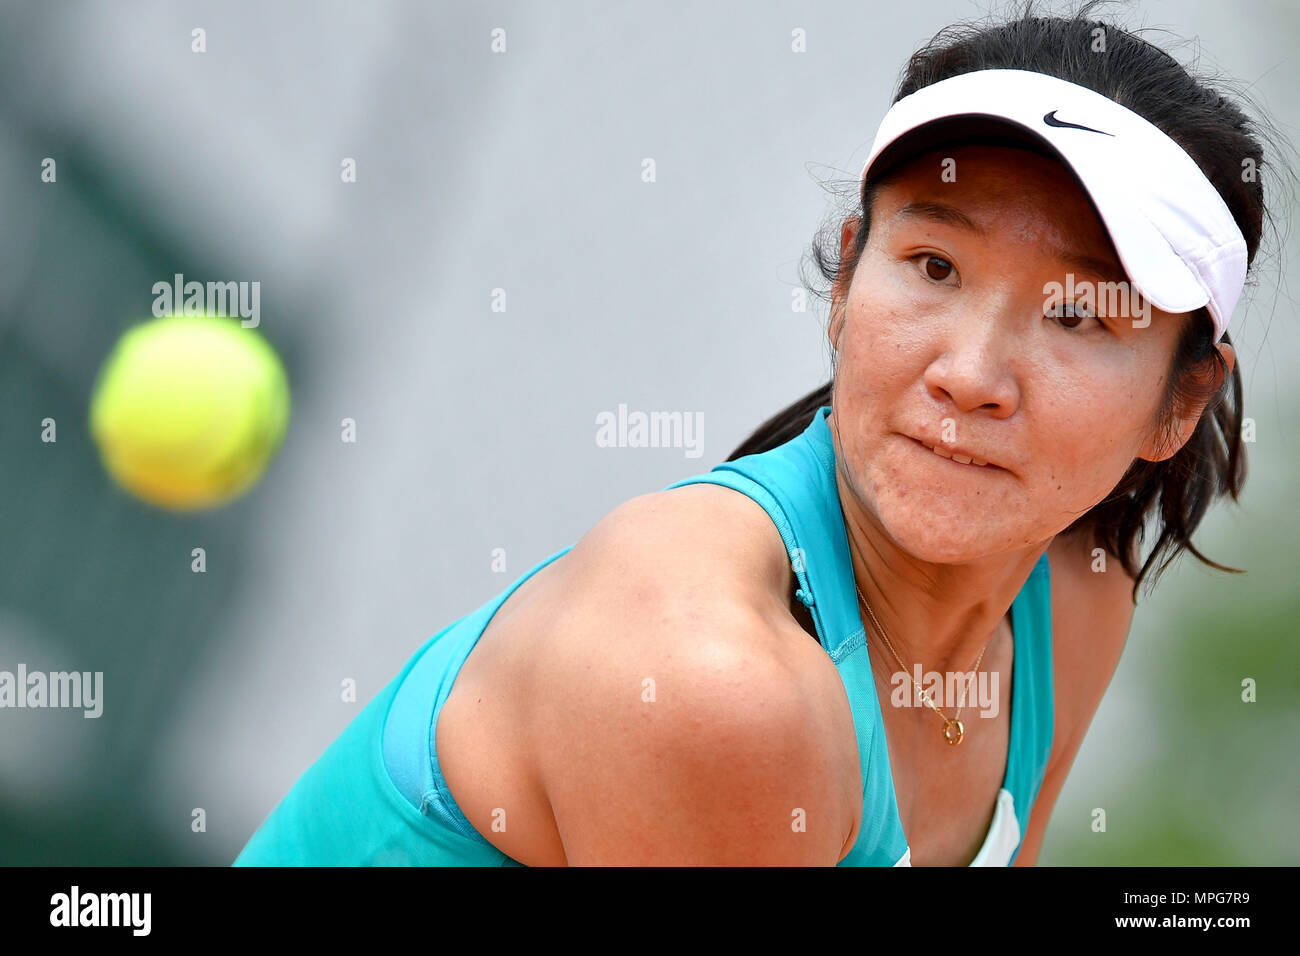 Paris. 23rd May, 2018. Lu Jingjing of China eyes on the ball during the women's singles Qualification 1st round match of French Open against Gabriella Taylor of Britain in Paris, France on May 23, 2018. Lu lost 0-2. Credit: Chen Yichen/Xinhua/Alamy Live News Stock Photo